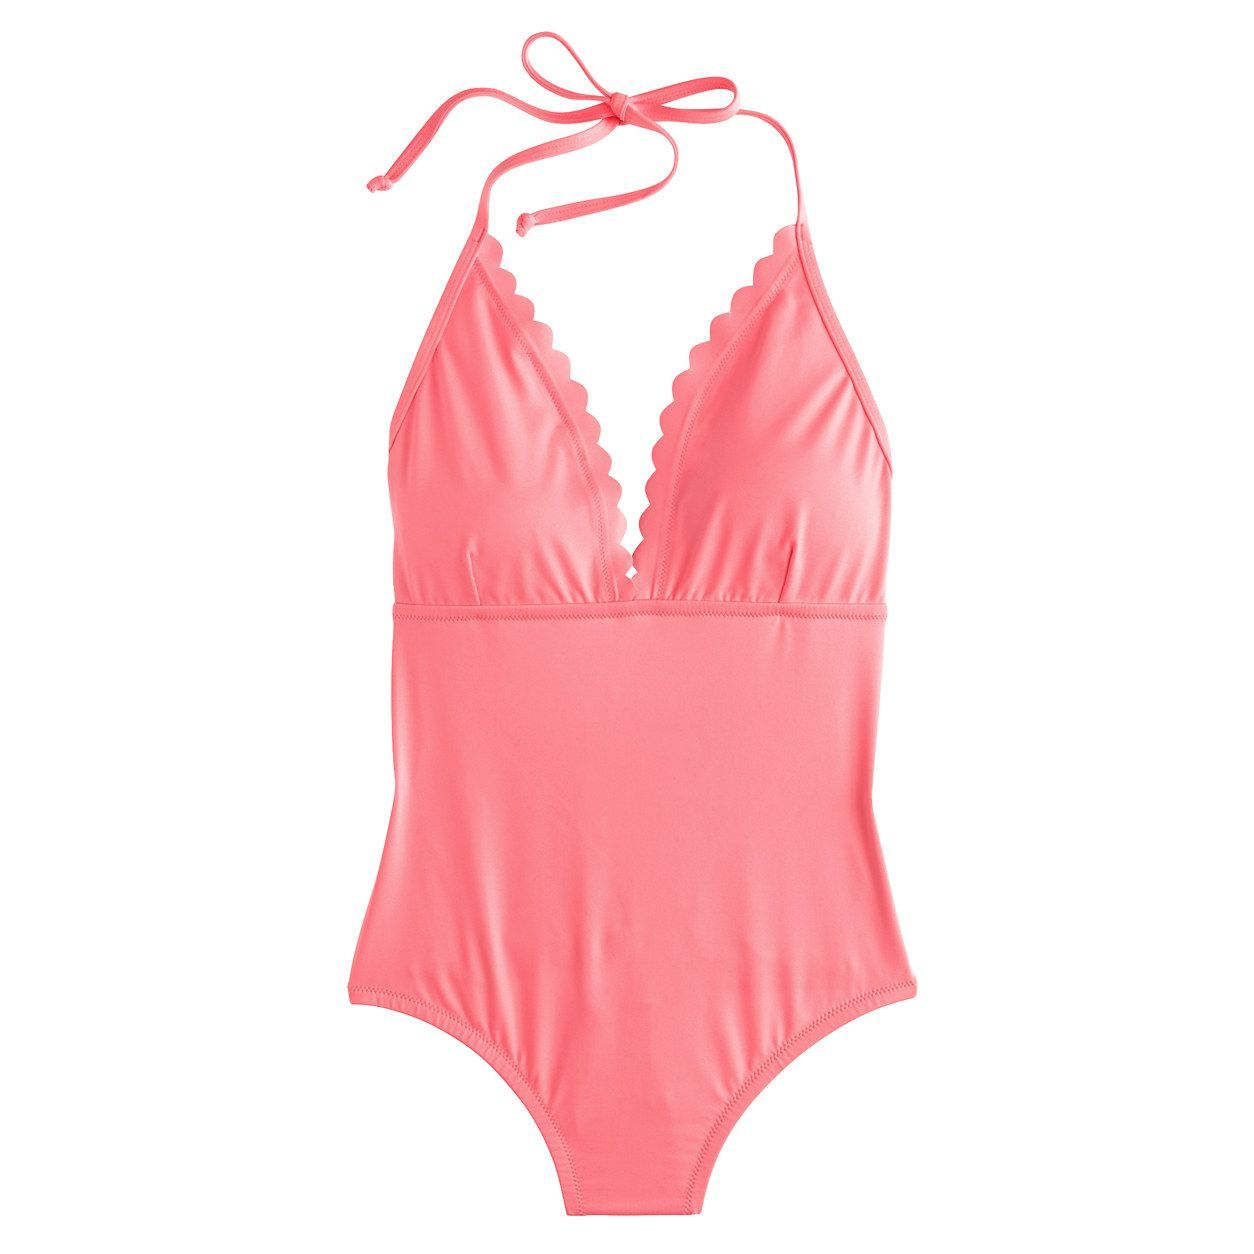 3beb69613da J.Crew Womens Scalloped V-Neck One-Piece Swimsuit In Italian Matte (Neon  Coral, Size 0)